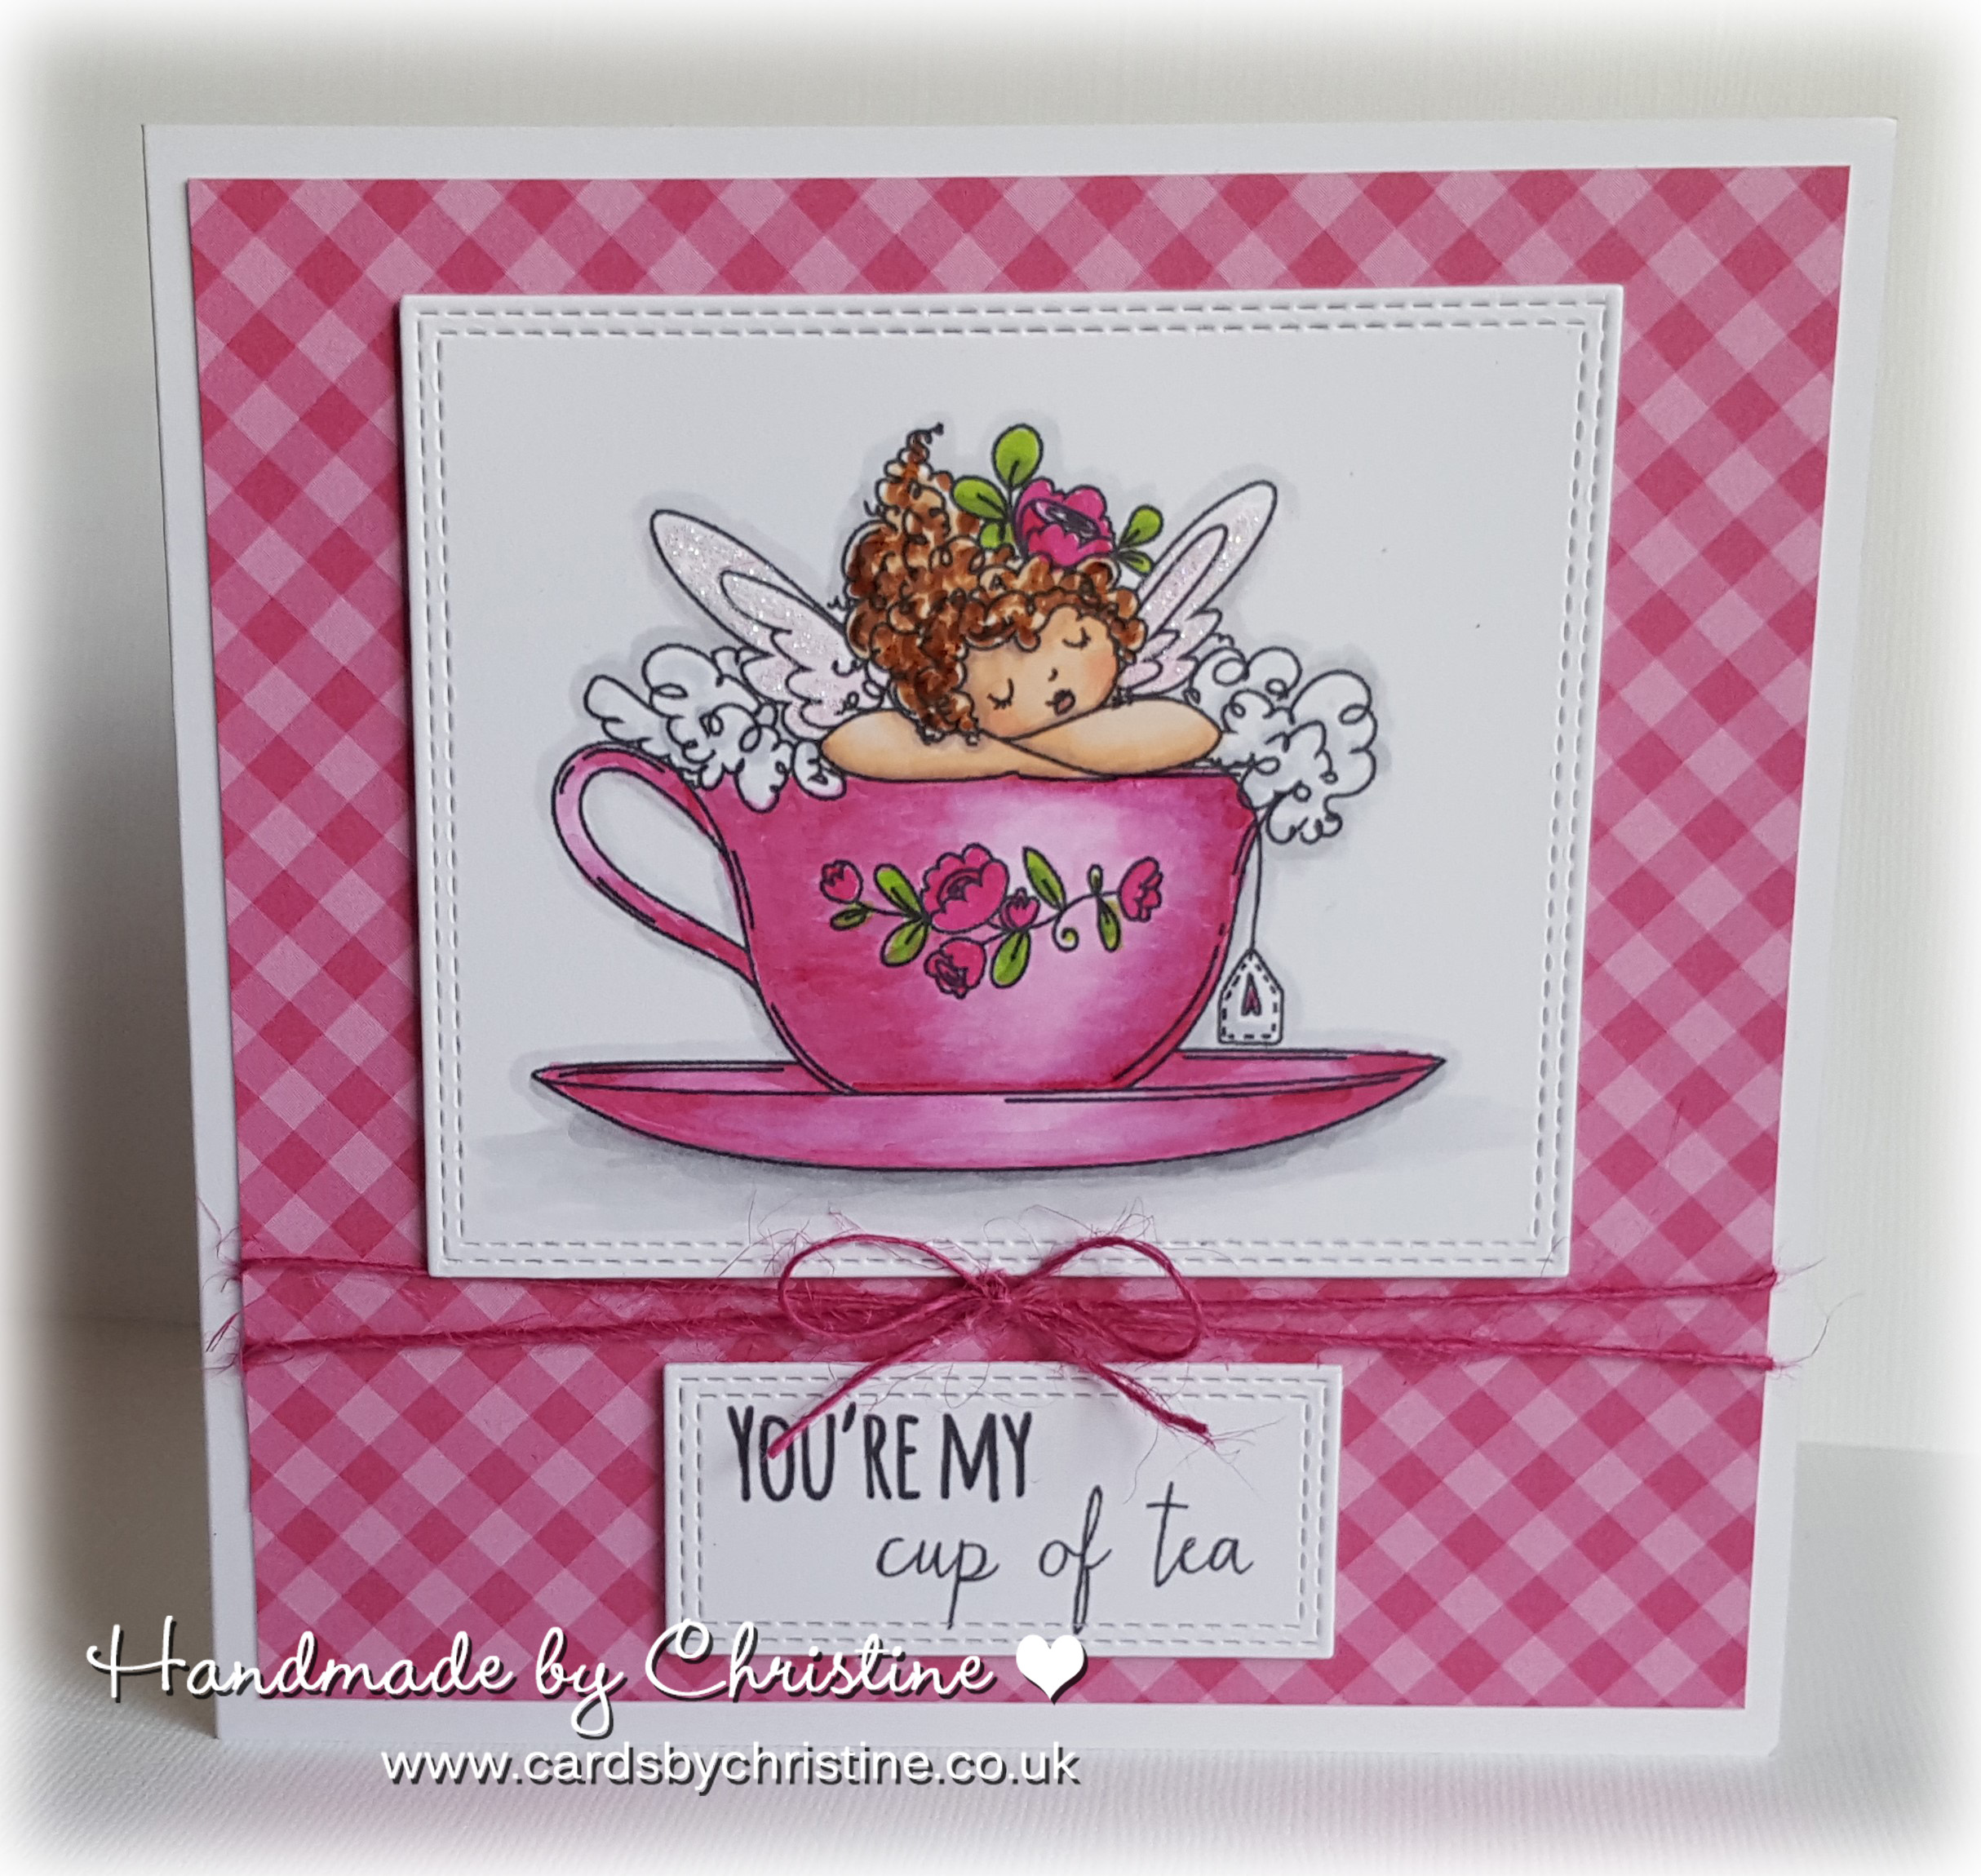 Stamping Bella JANUARY 2017 rubber stamp release-Edna's CUP OF TEA card by Christine Levison